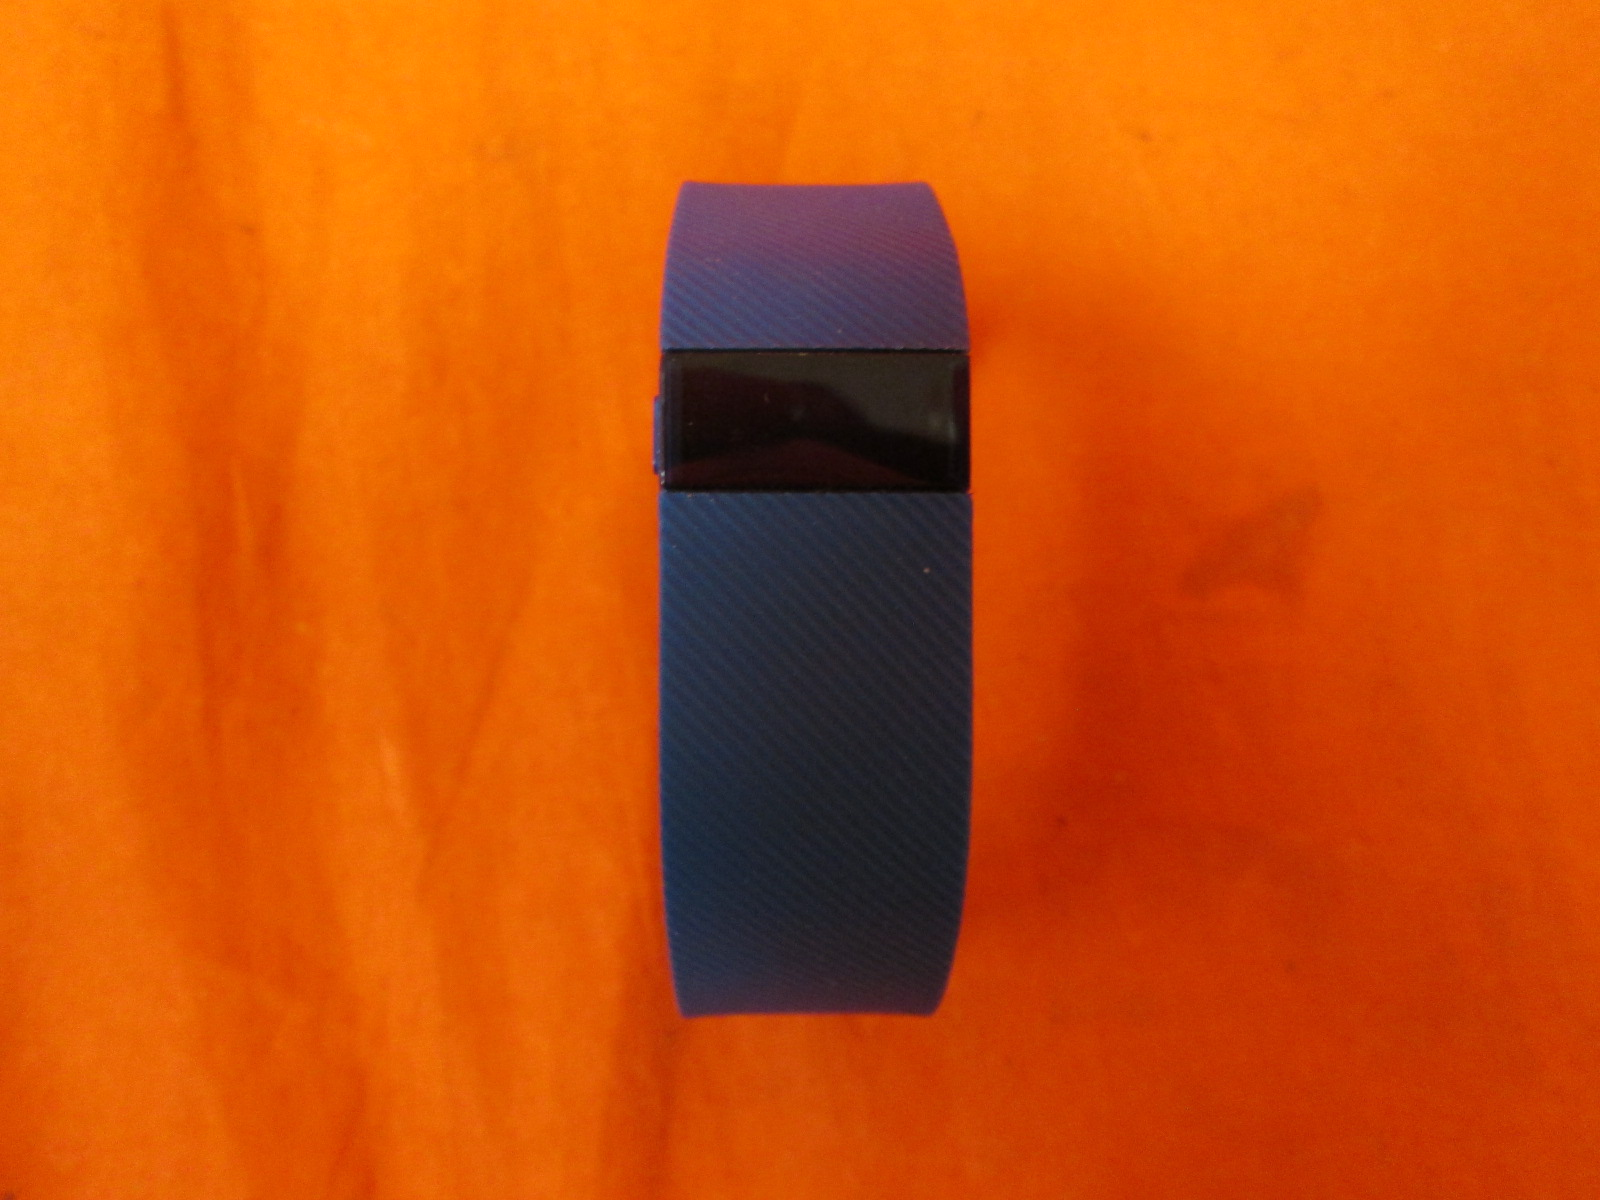 how to turn on fitbit wristband